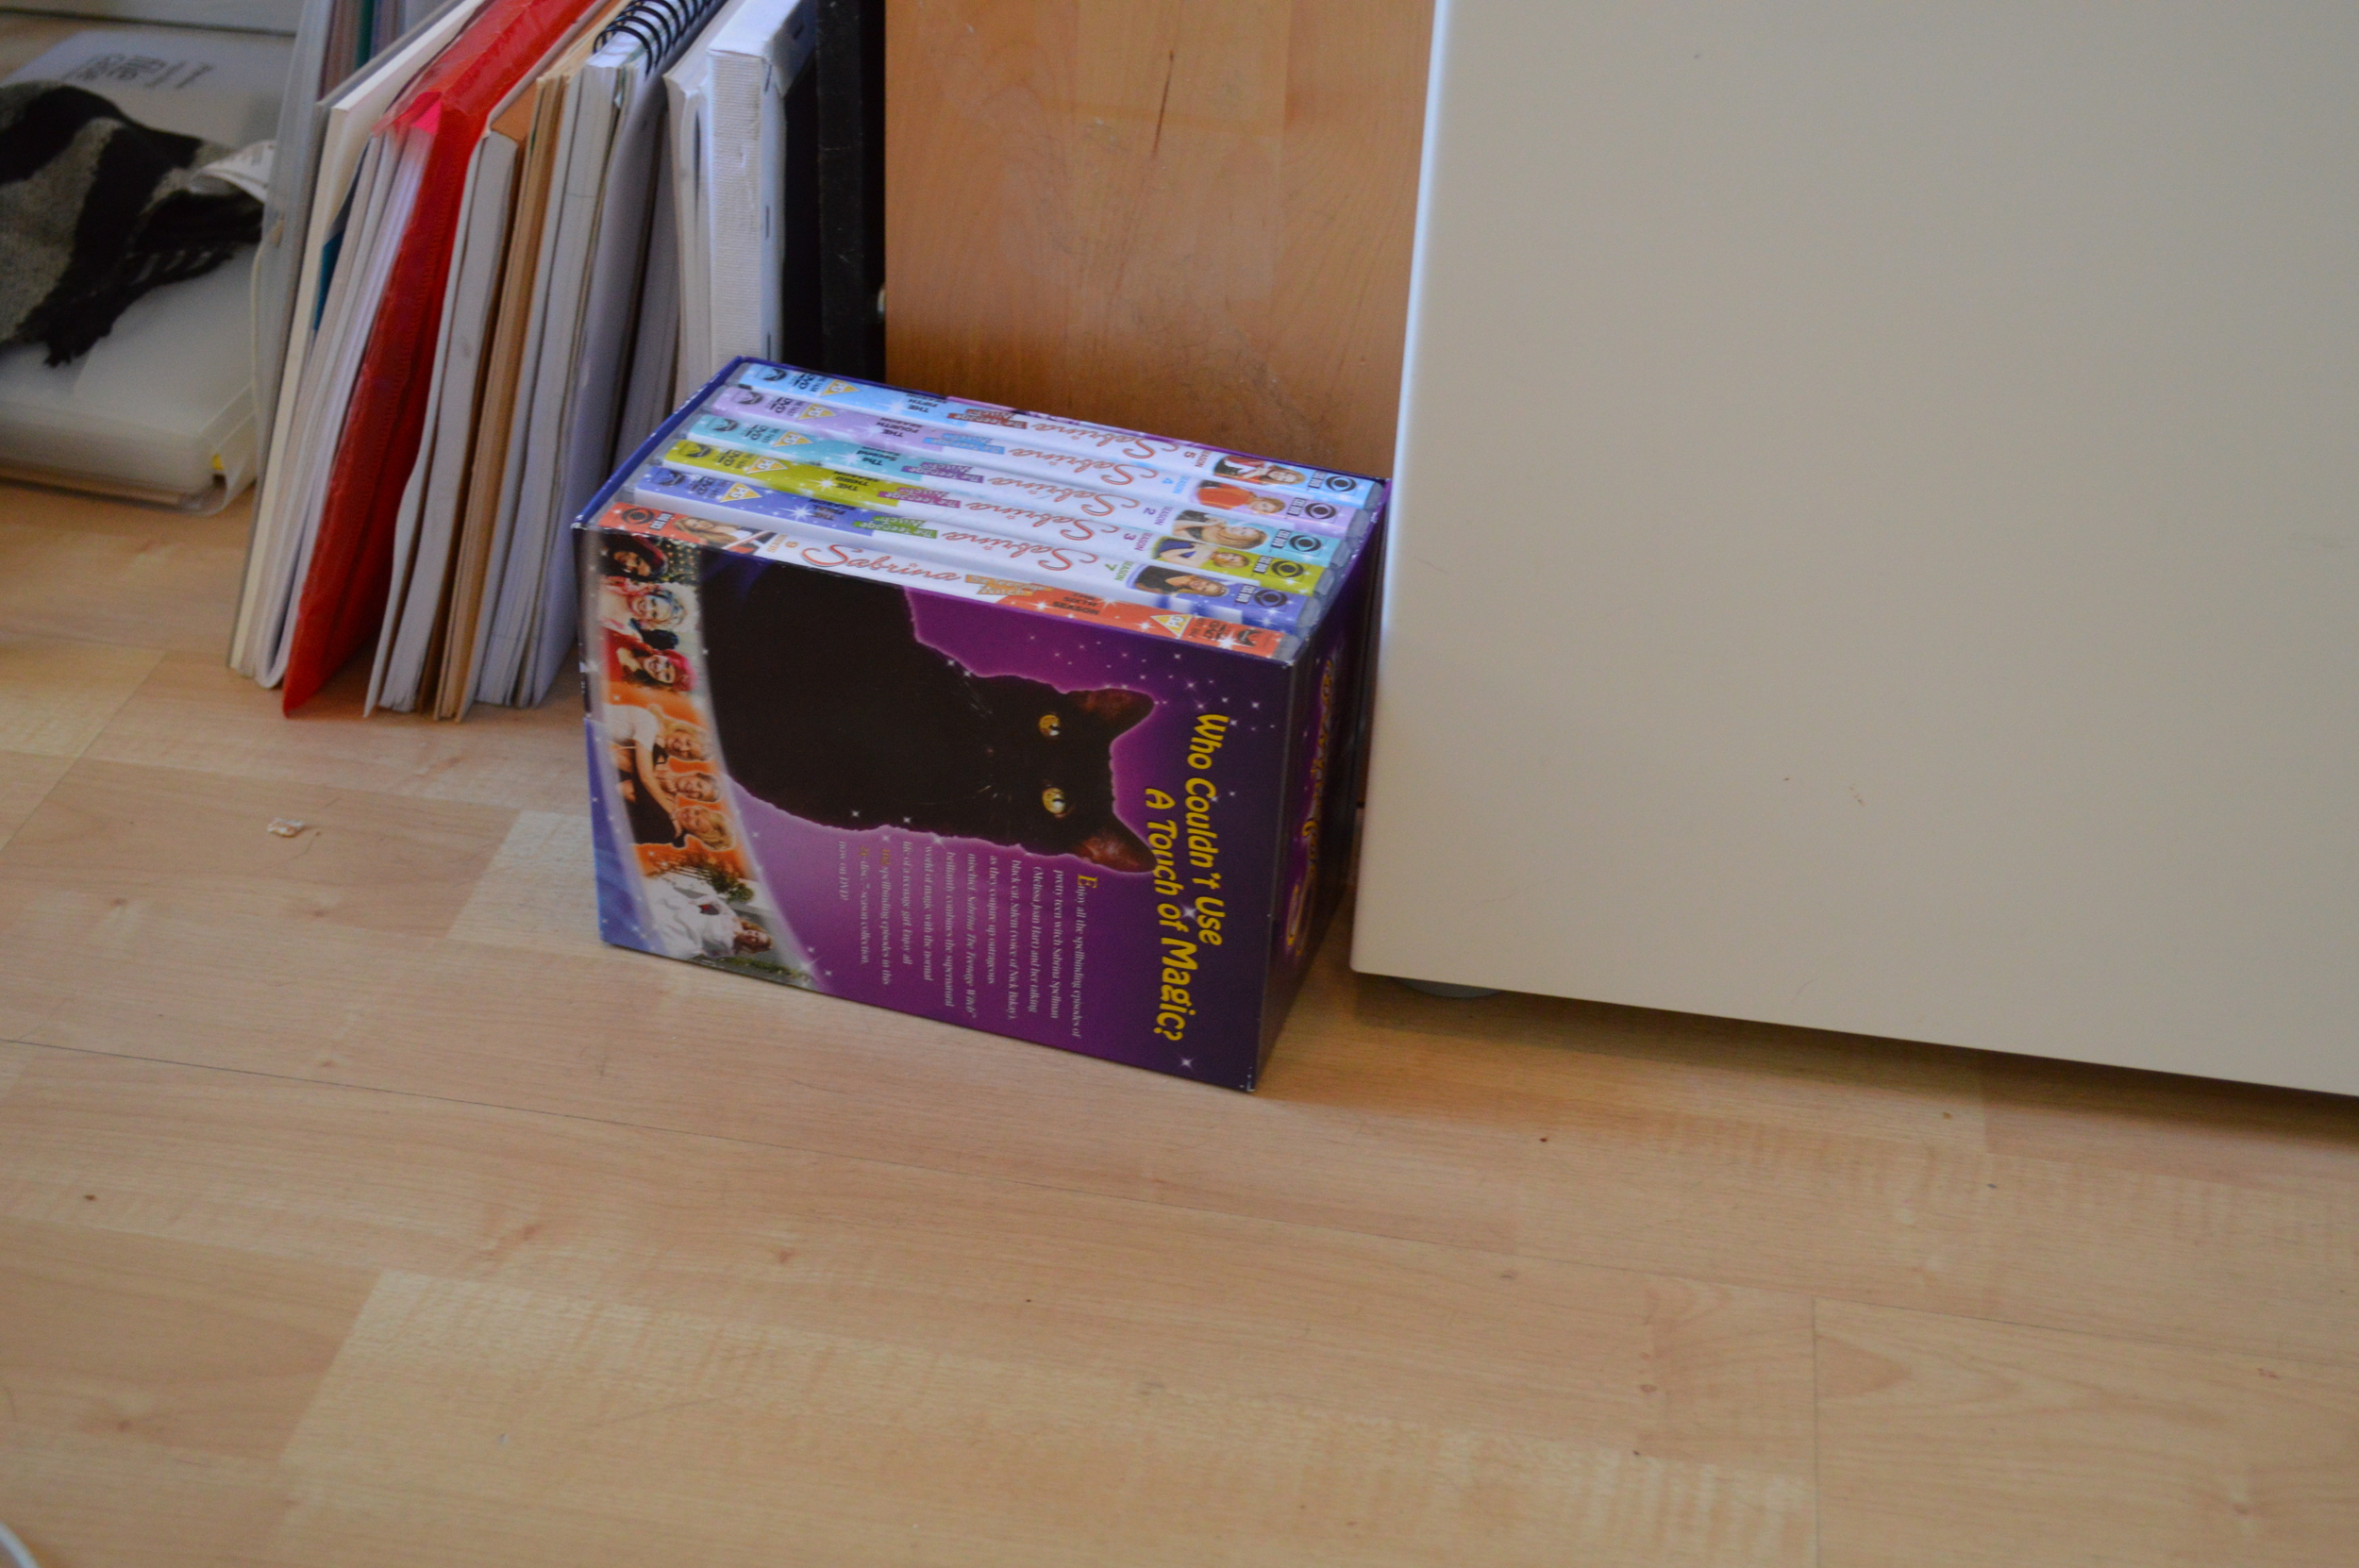 I spotted a Sabrina the Teenage Witch box set. Perhaps Kitty takes Halloween appearance tips from Salem